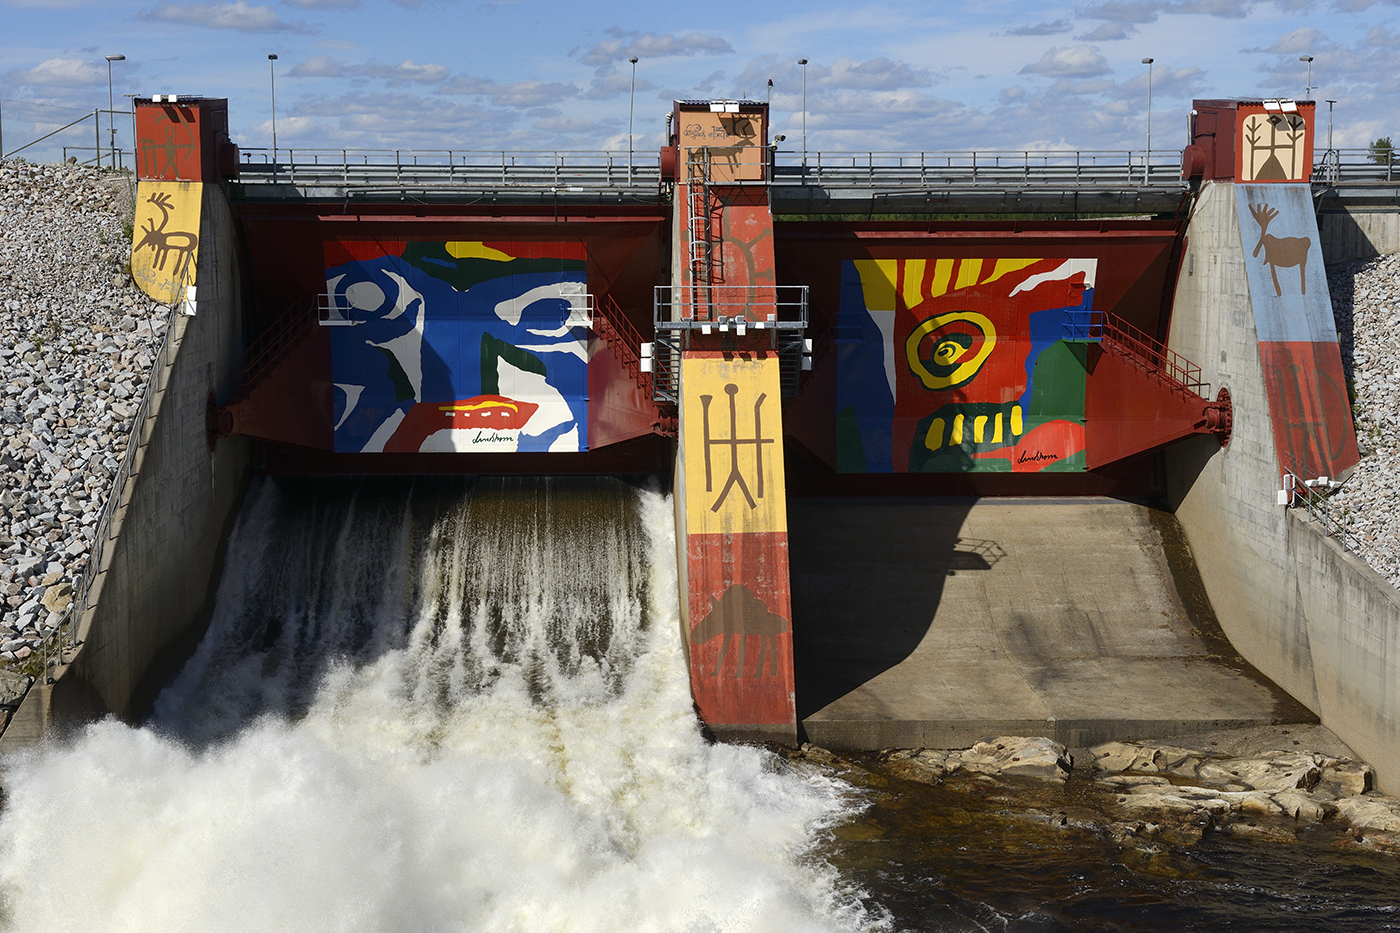 Dam Removal Europe will work to restore European rivers by removing old and obsolete dams and weirs.